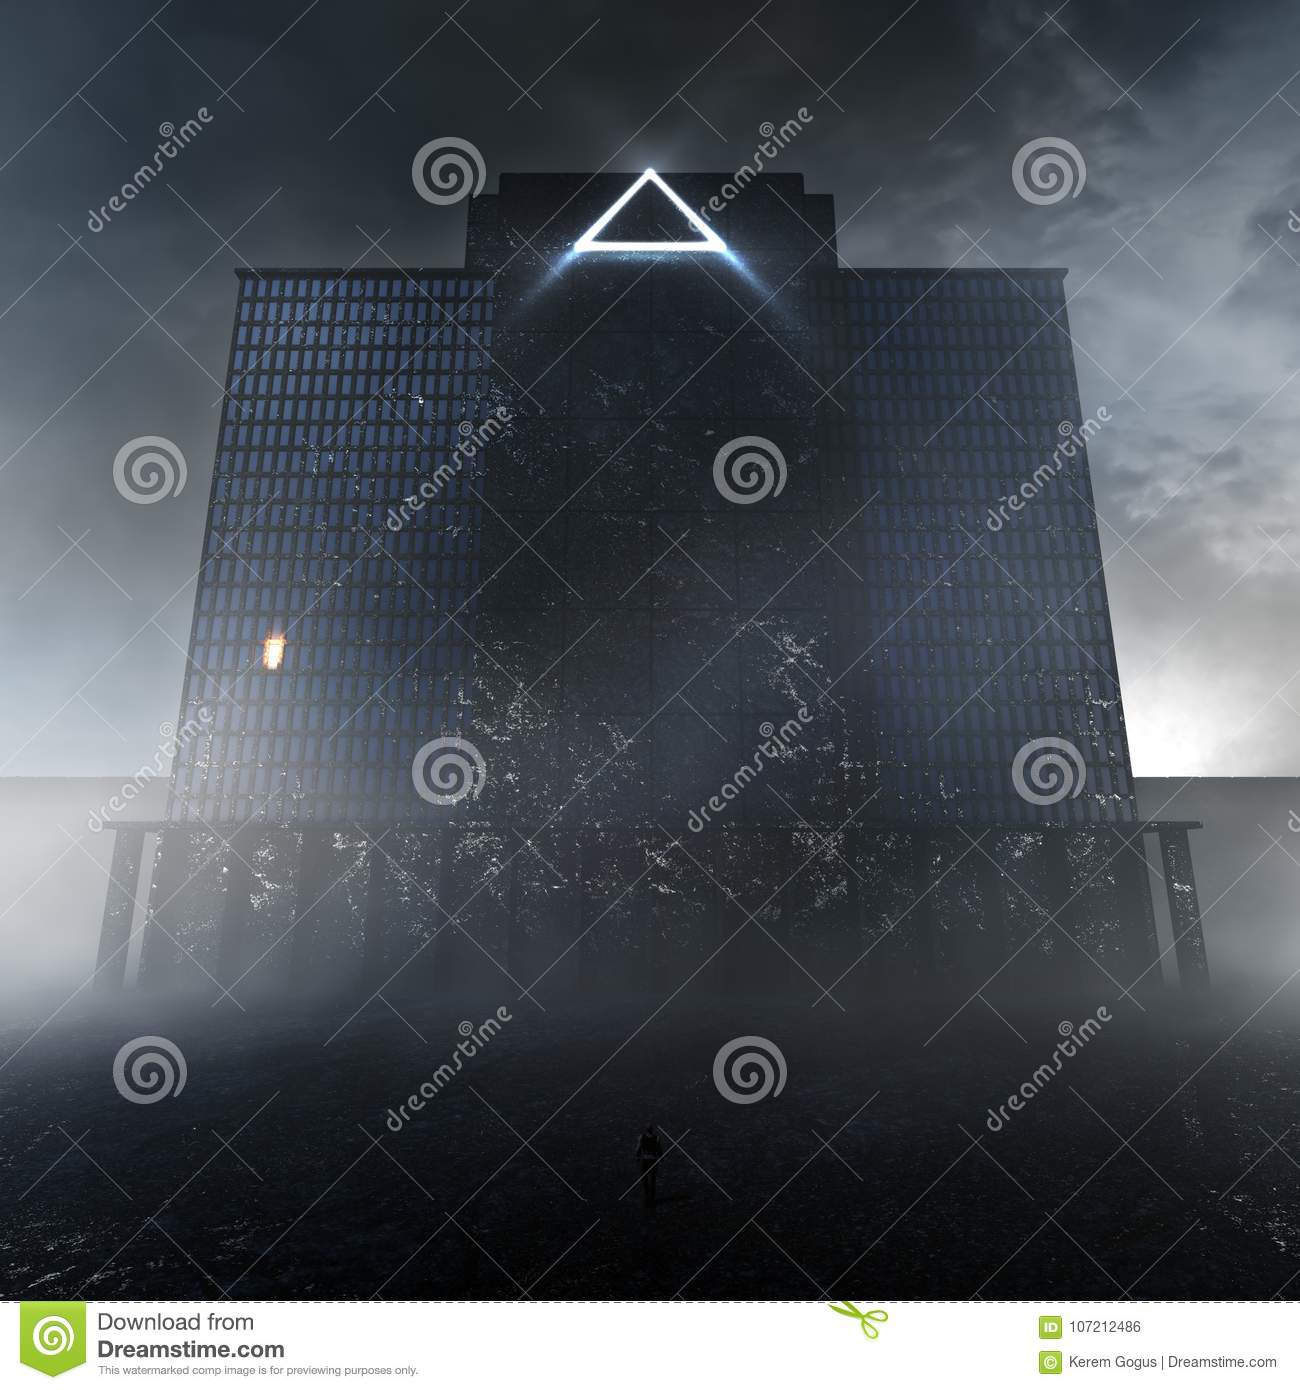 Mysterious Dark Building In The Mist